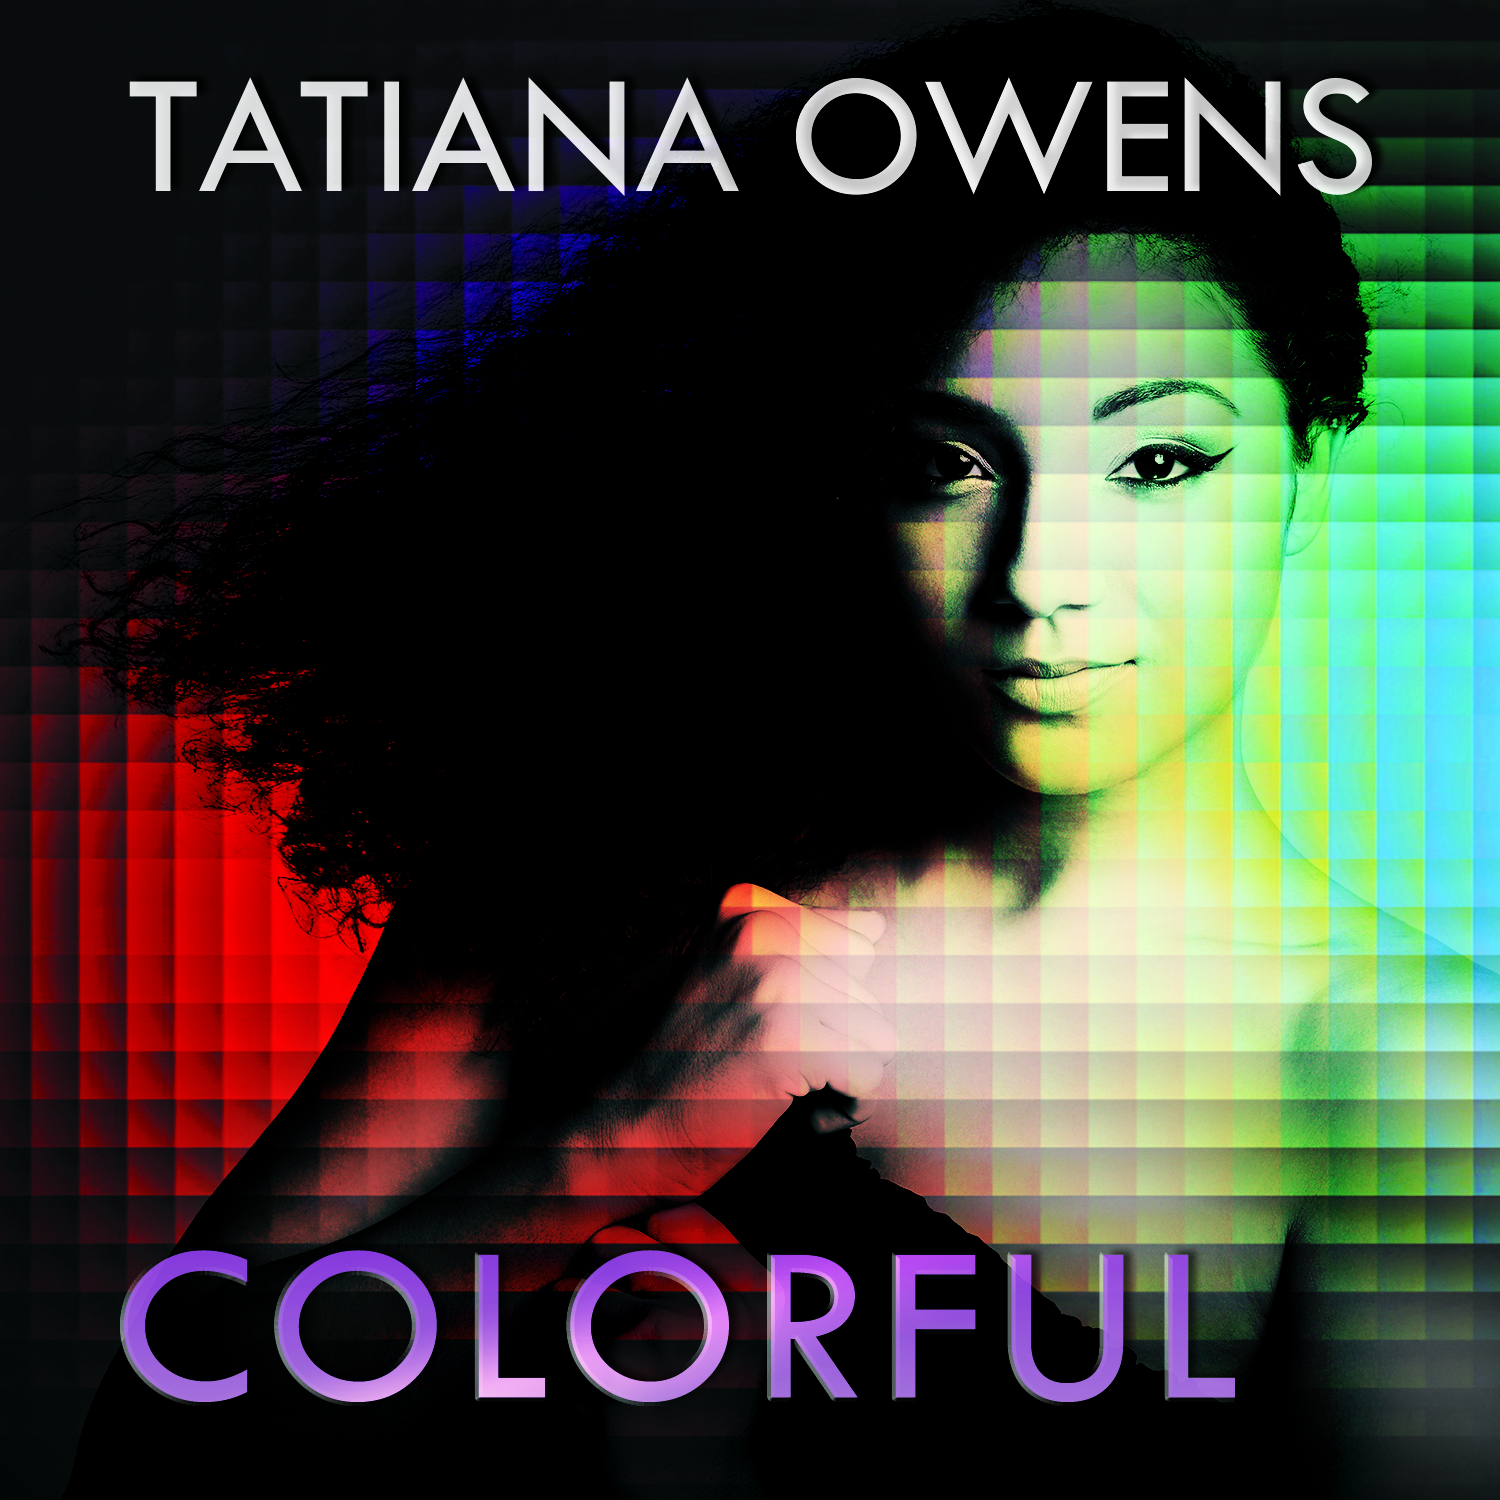 Colorful Tatiana Owens